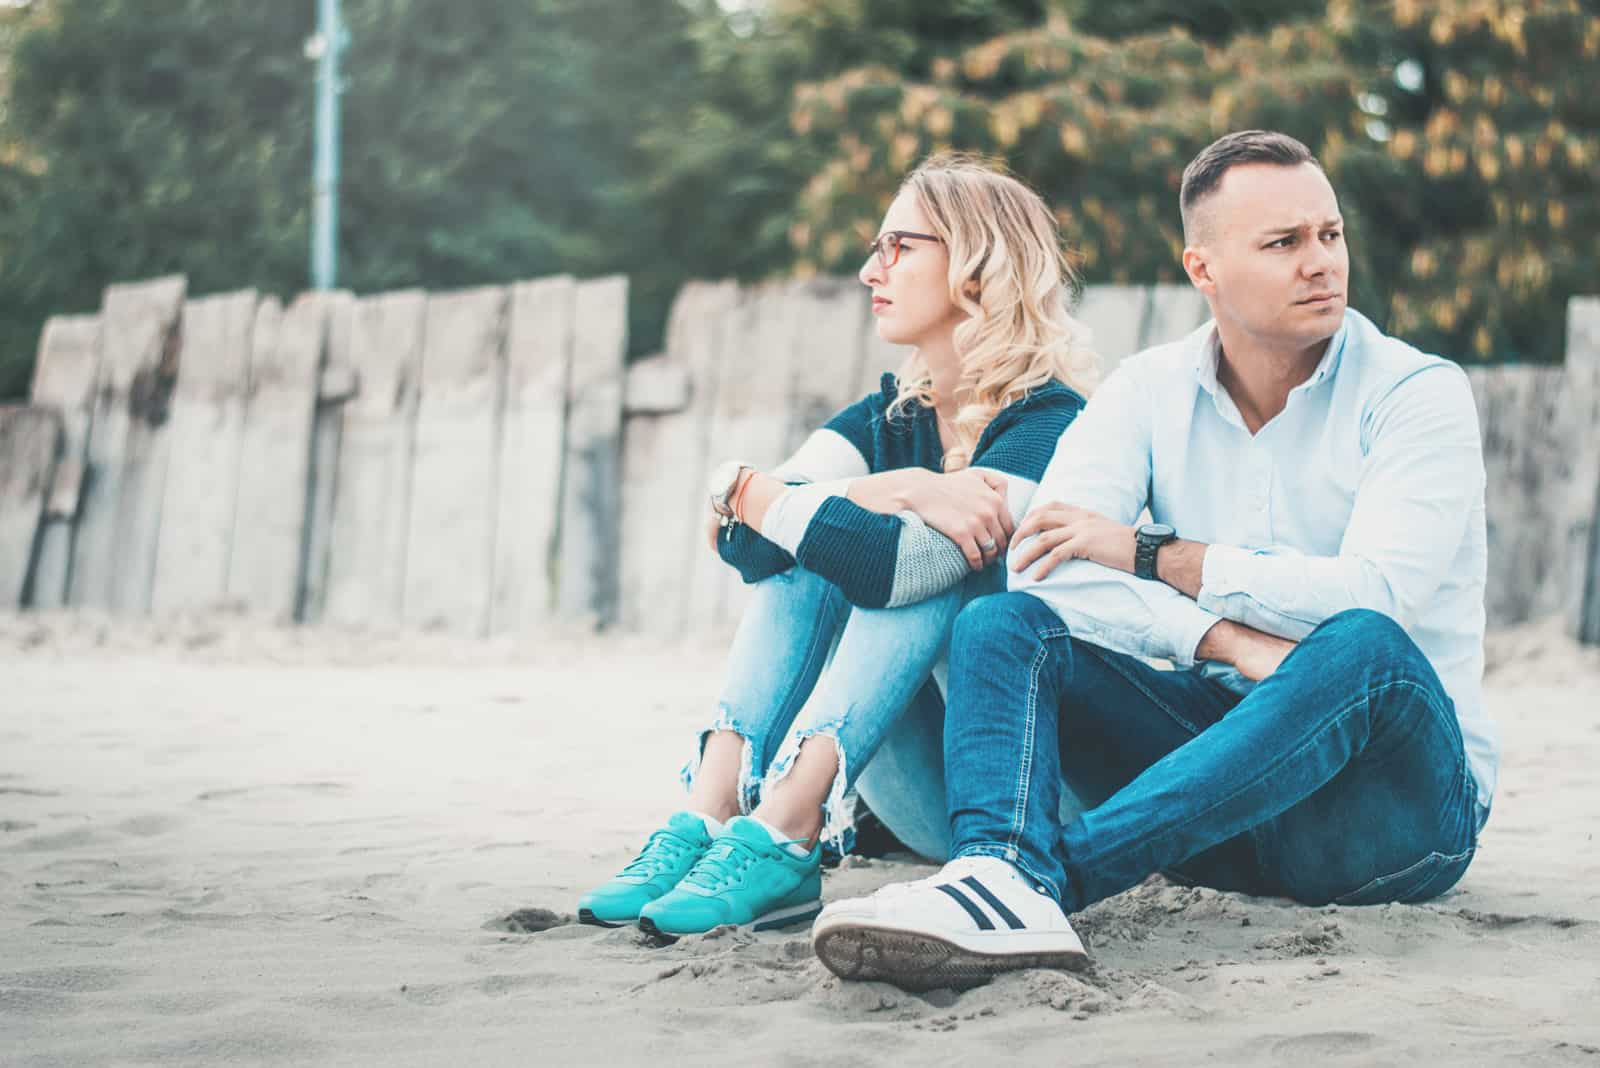 the man turned his back on the woman as they sat on the beach